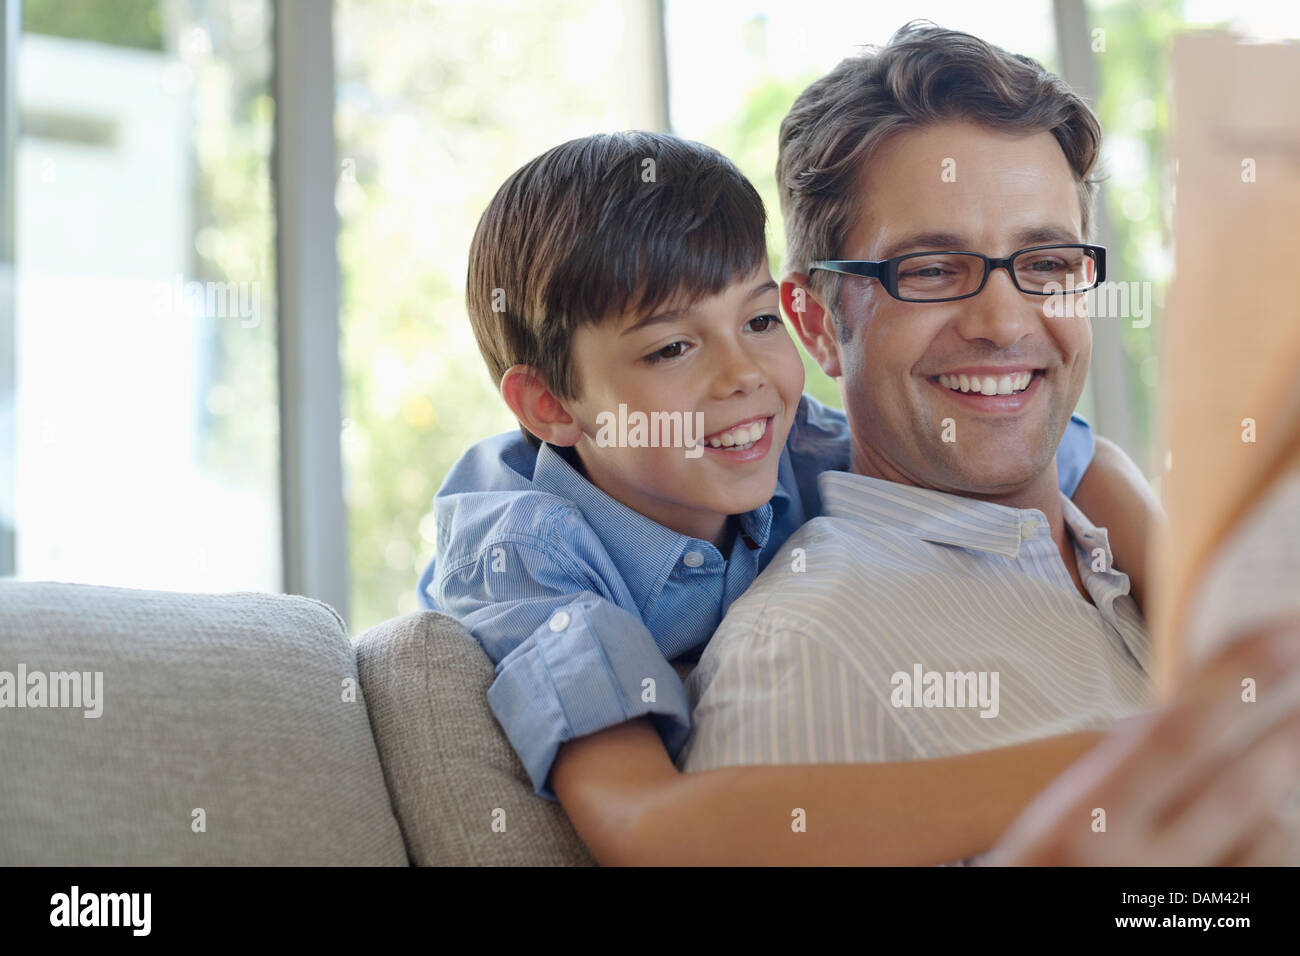 Father and son hugging on sofa - Stock Image